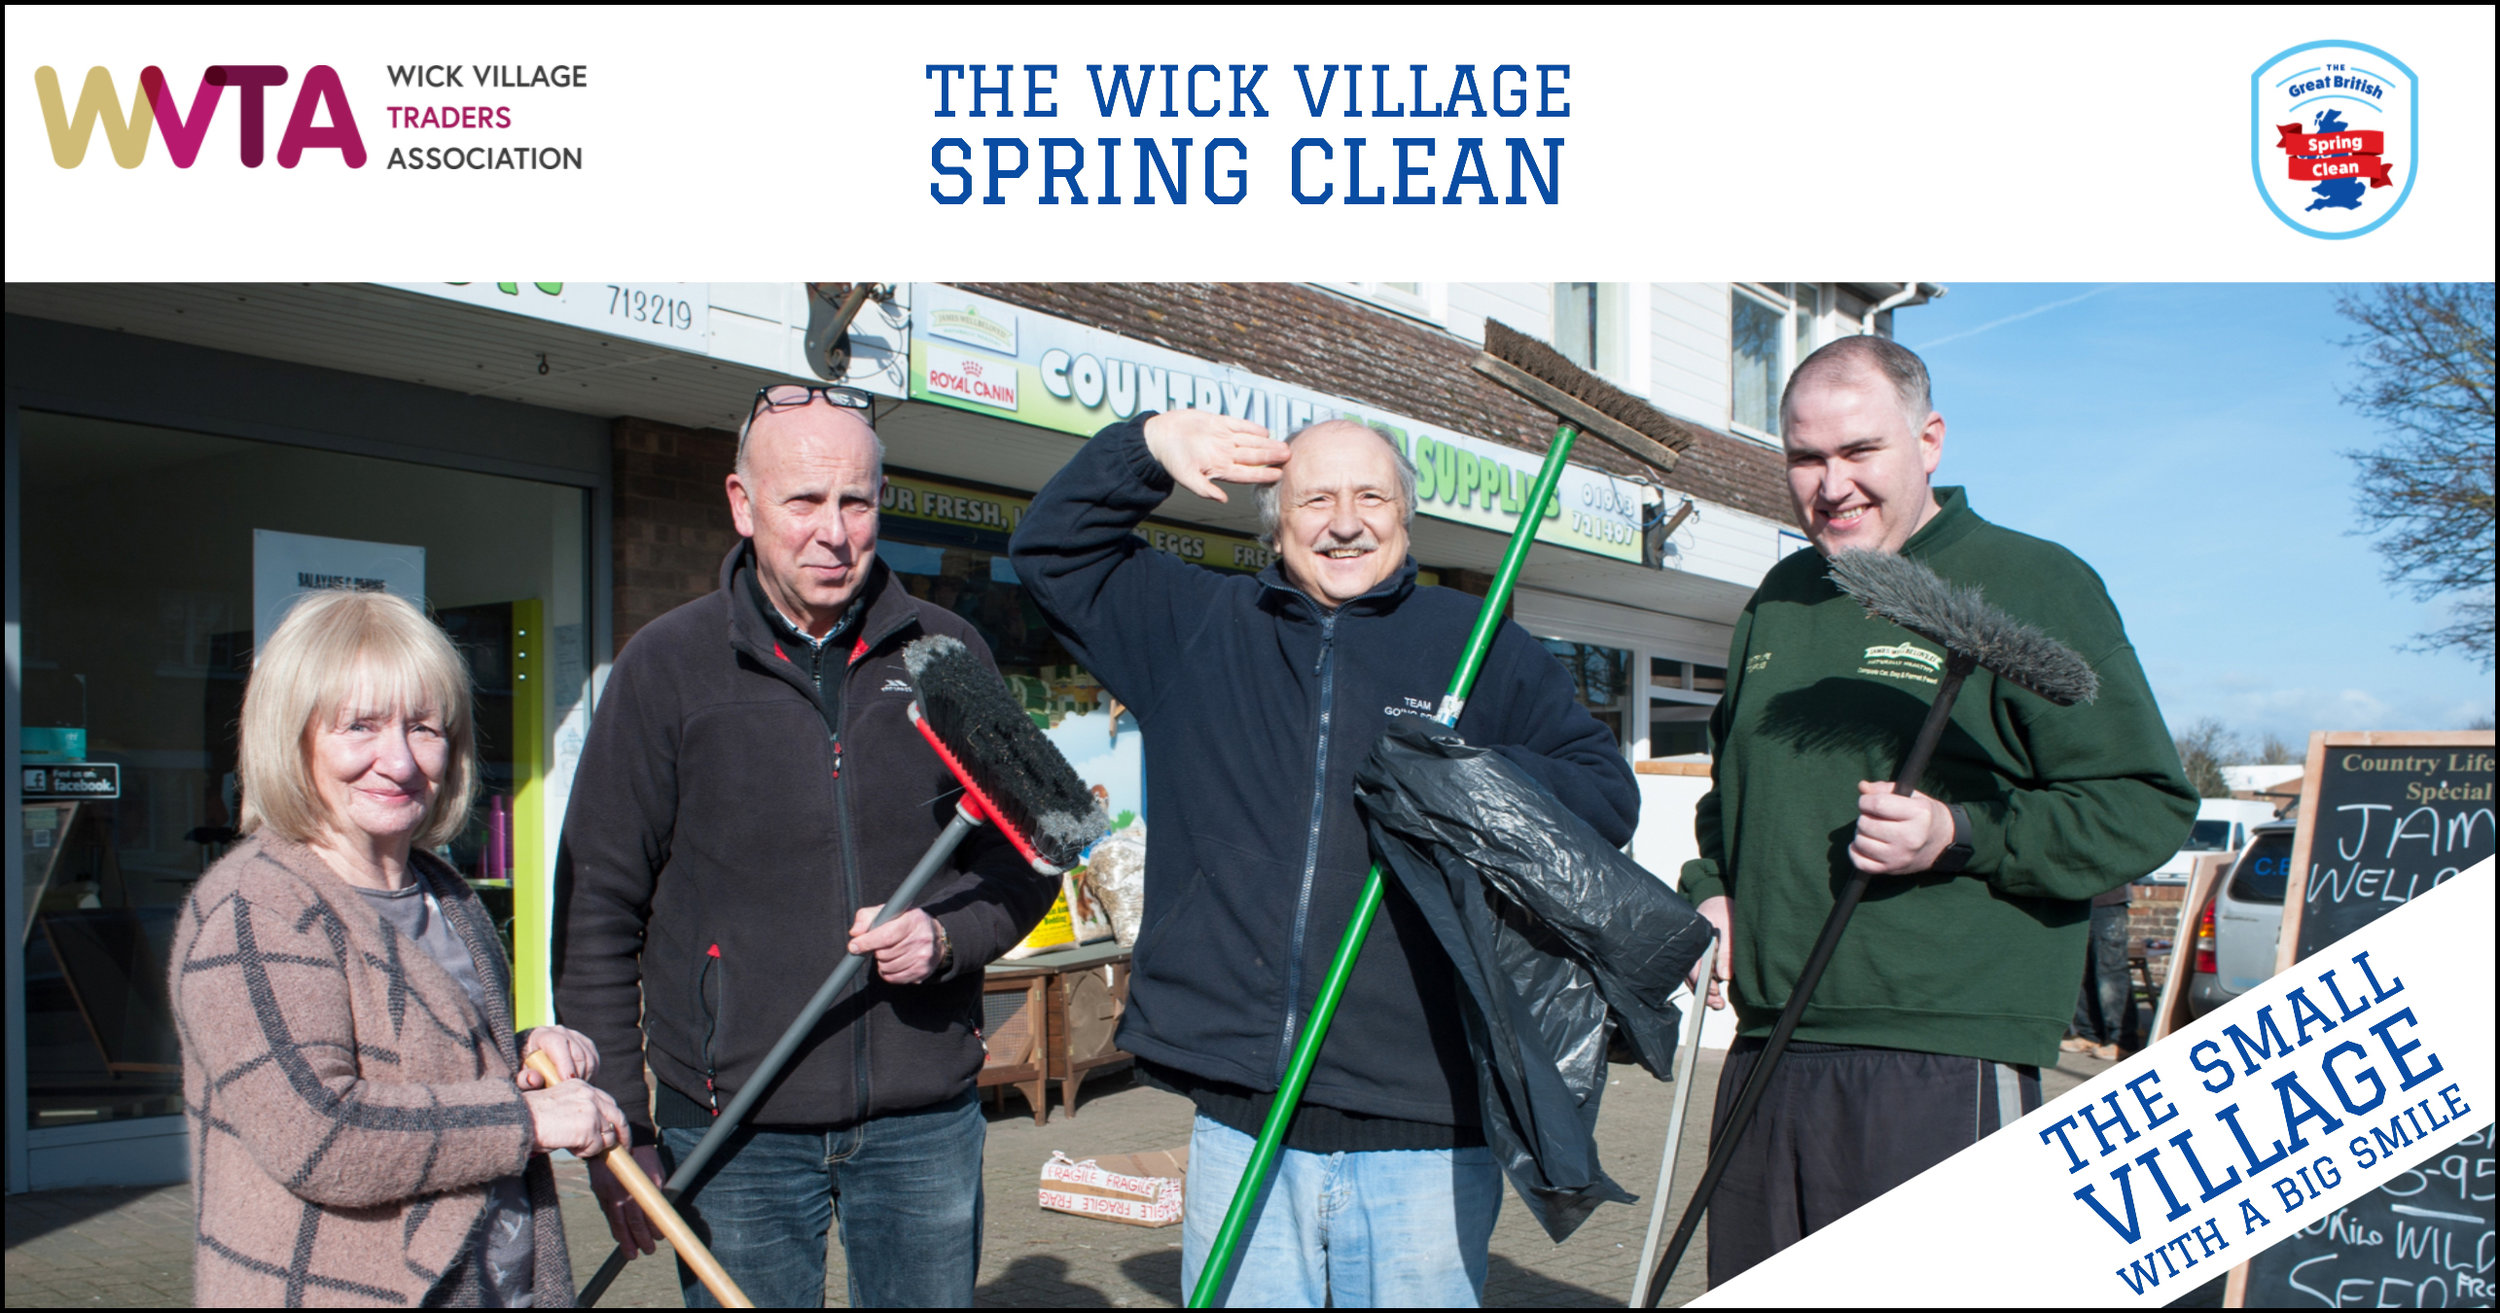 Volunteers and business owners will be working together to give Wick Village in Littlehampton a spring clean. Photo © Scott Ramsey / Wick Village Traders Association